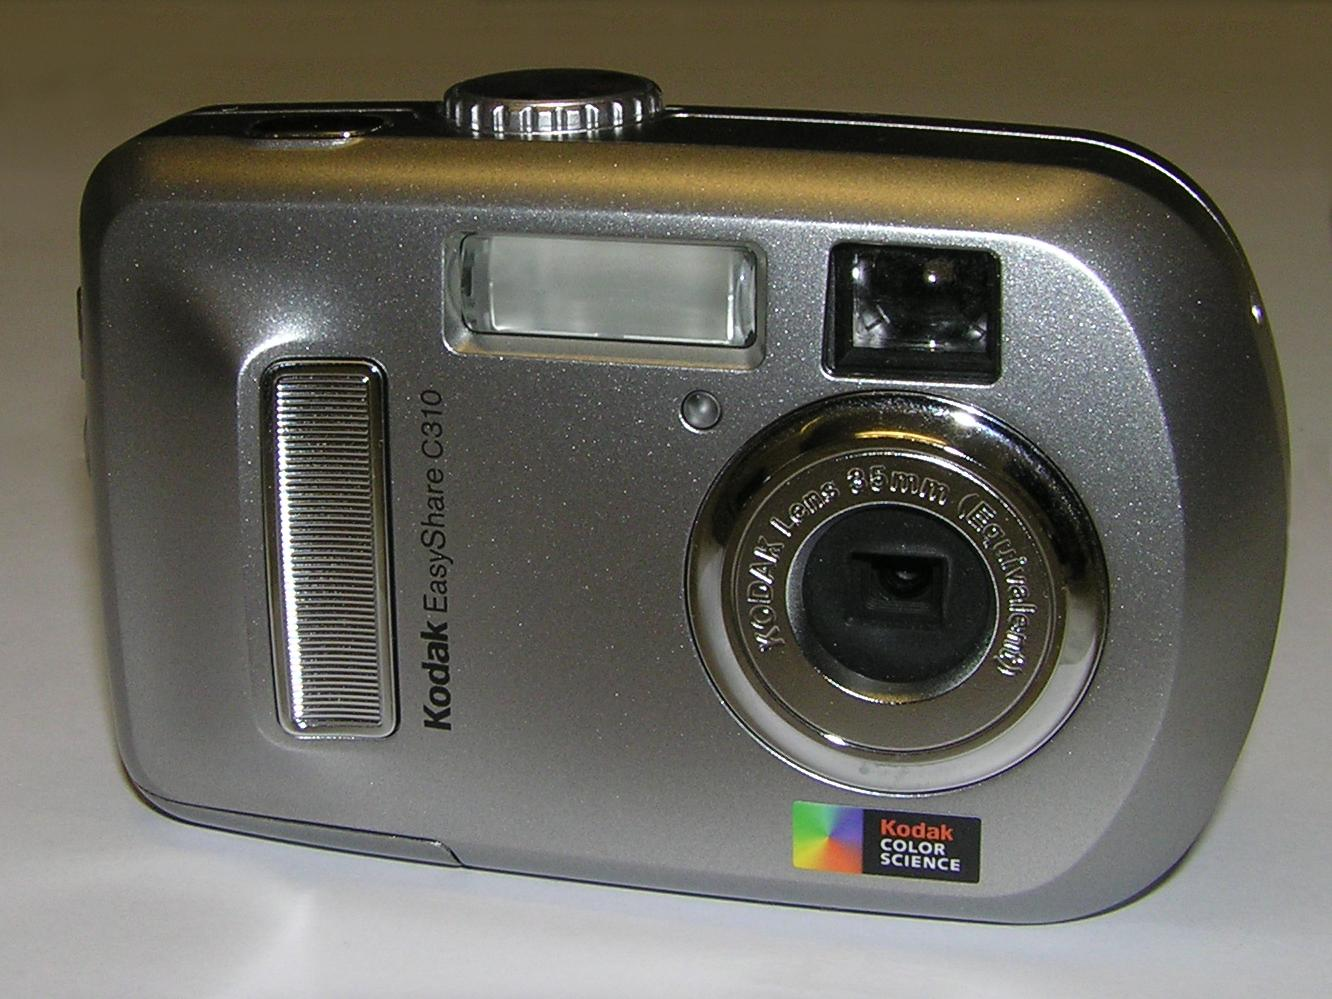 KODAK C310 CAMERA DRIVER FOR WINDOWS